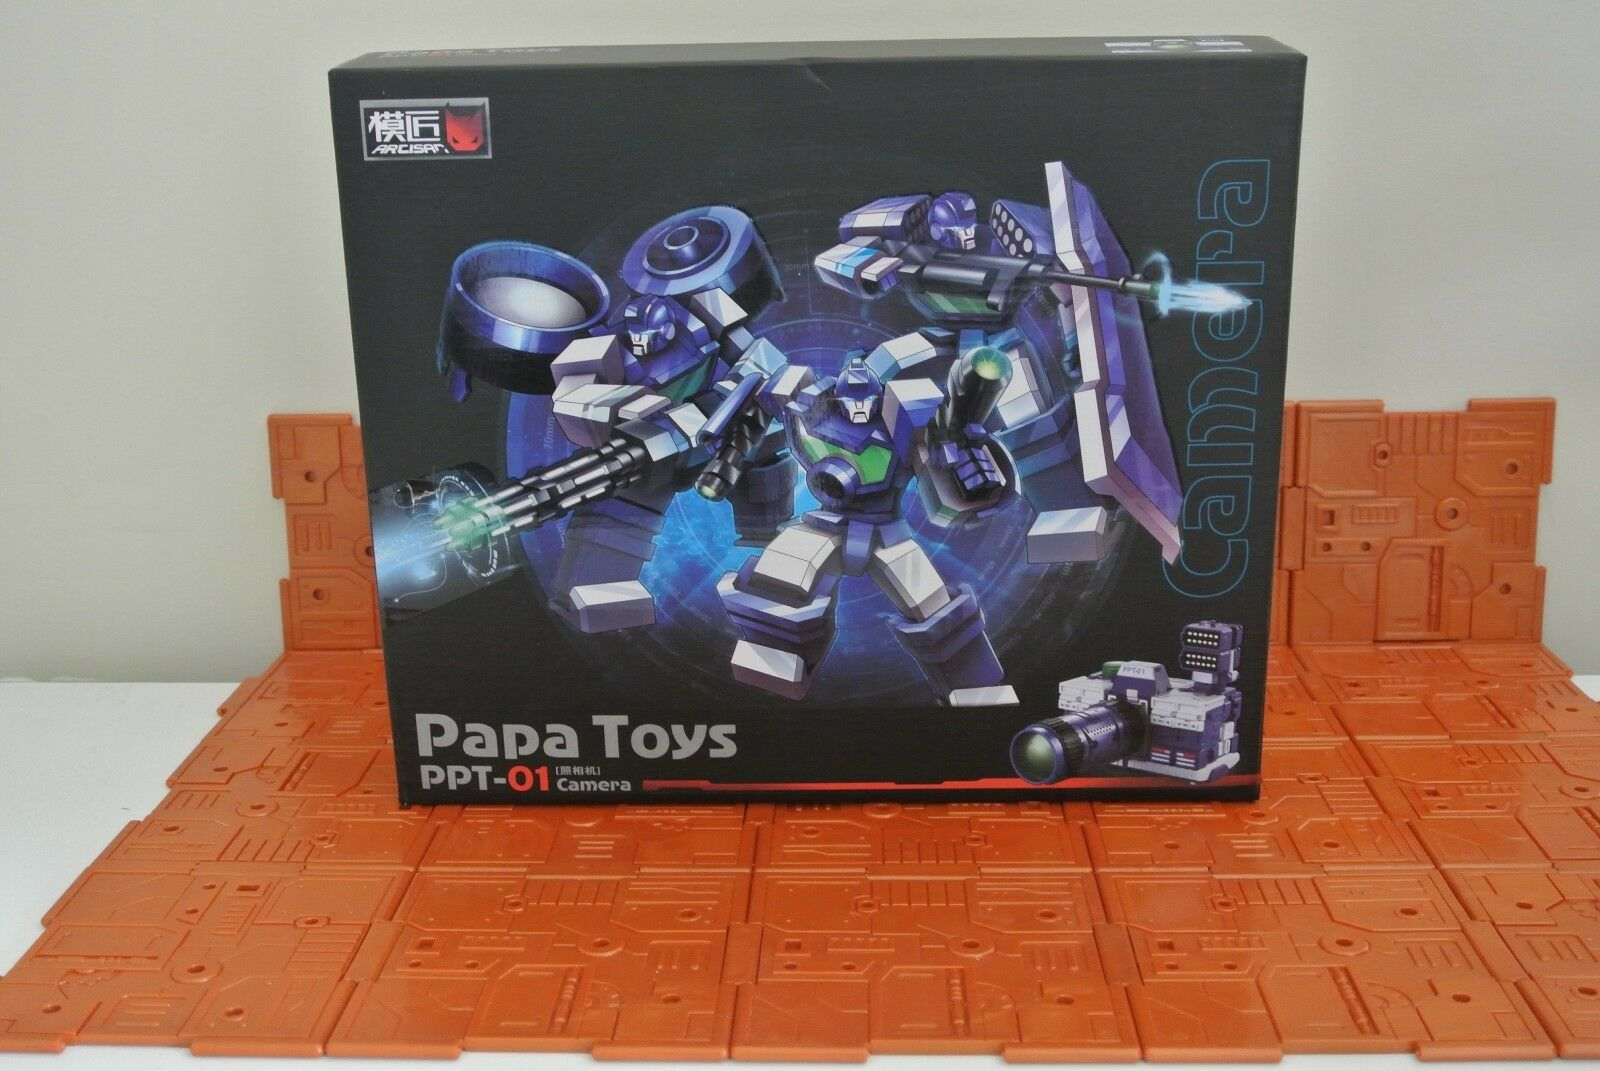 Transformers G1 PAPA TOYS PP-01 Camera Reflector PPT01 CAMERA -Christmas sales-